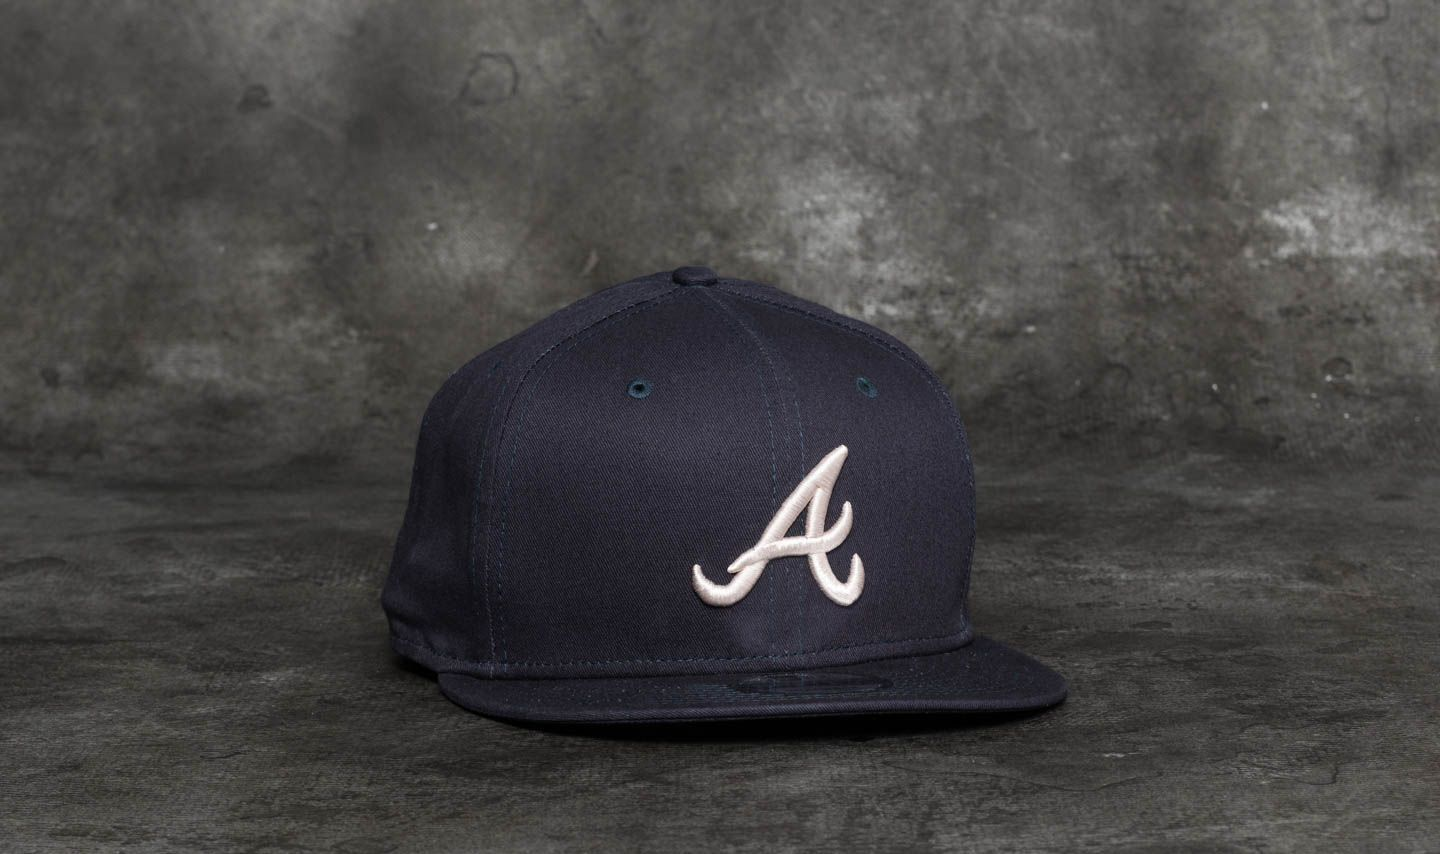 c7cac84f93322 New Era 9Fifty League Essential Atlanta Braves Cap Navy  Satin at a great  price  22